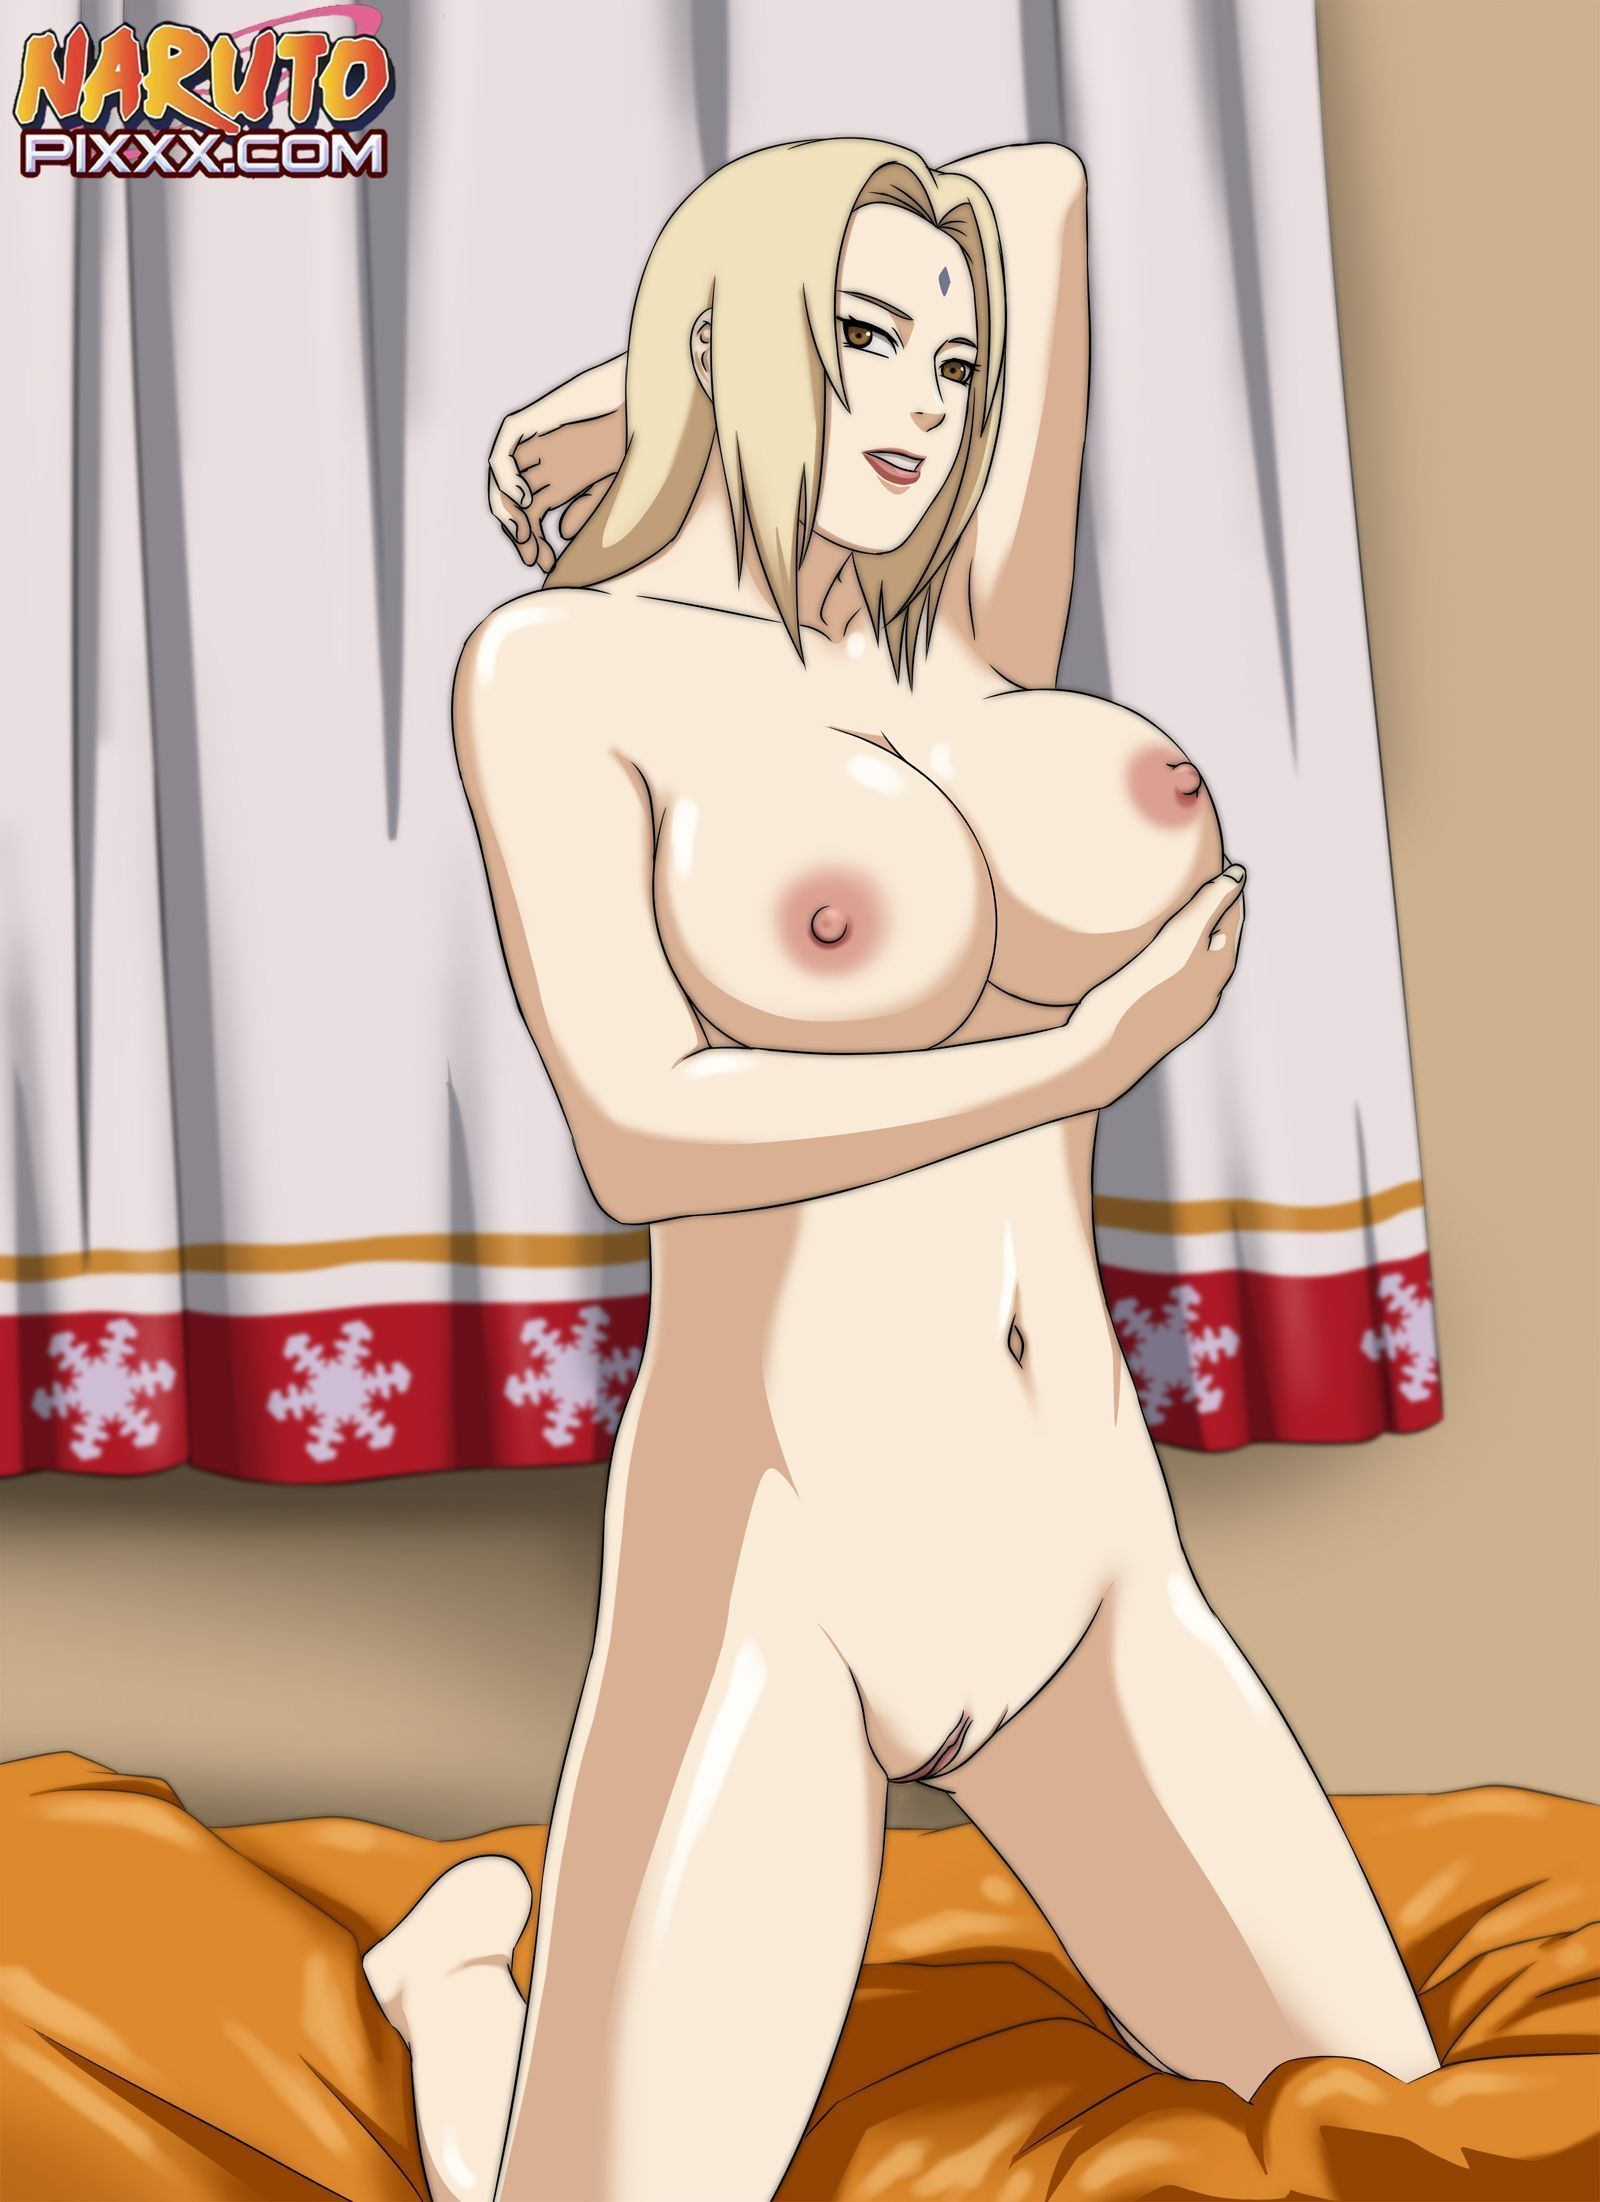 And Naruto big boobs pixxx